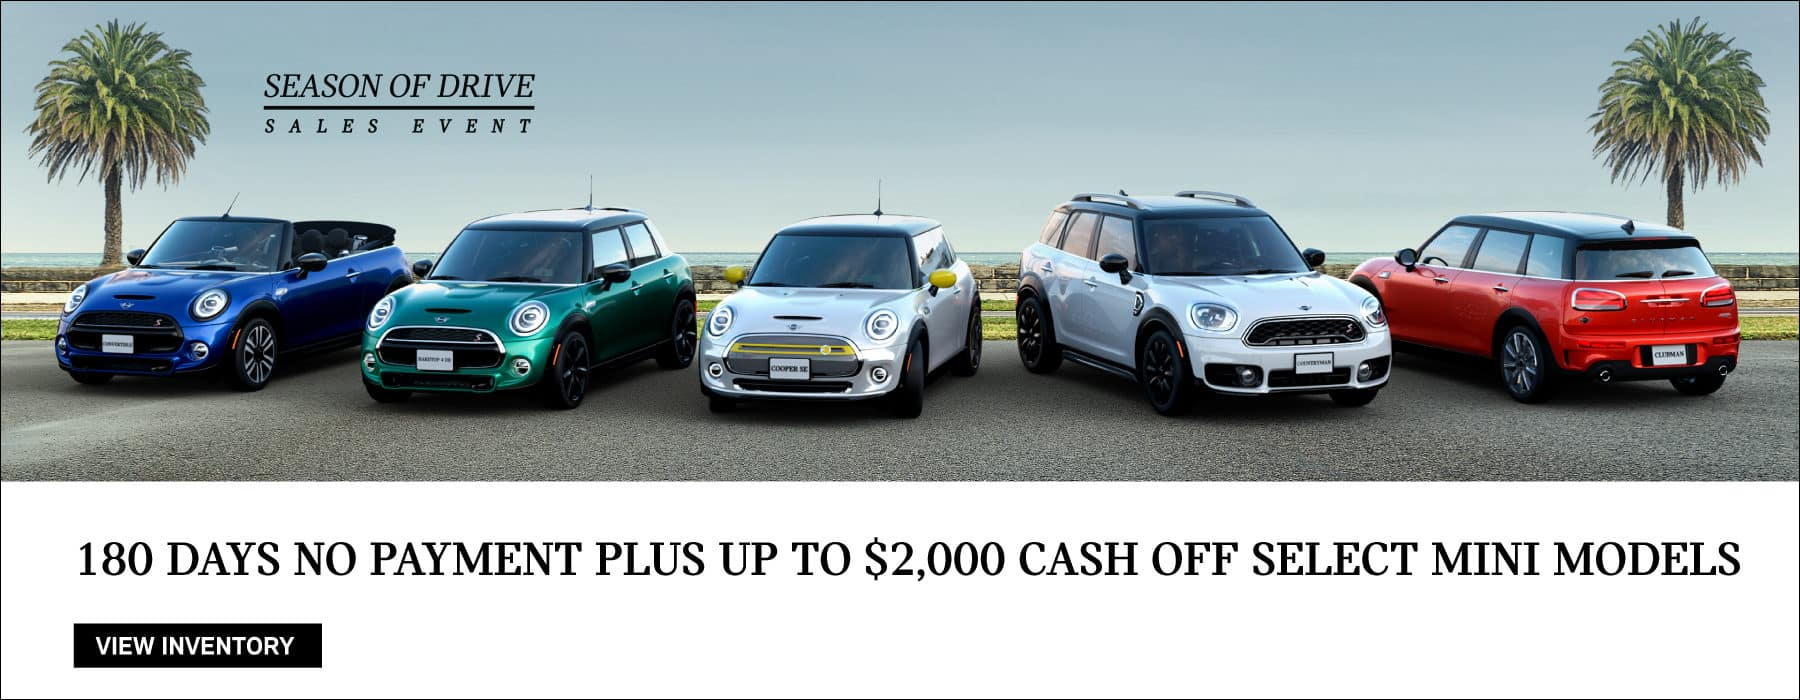 180 DAYS NO PAYMENT PLUS UP TO $2000 CASH OFF SELECT MINI MODELS